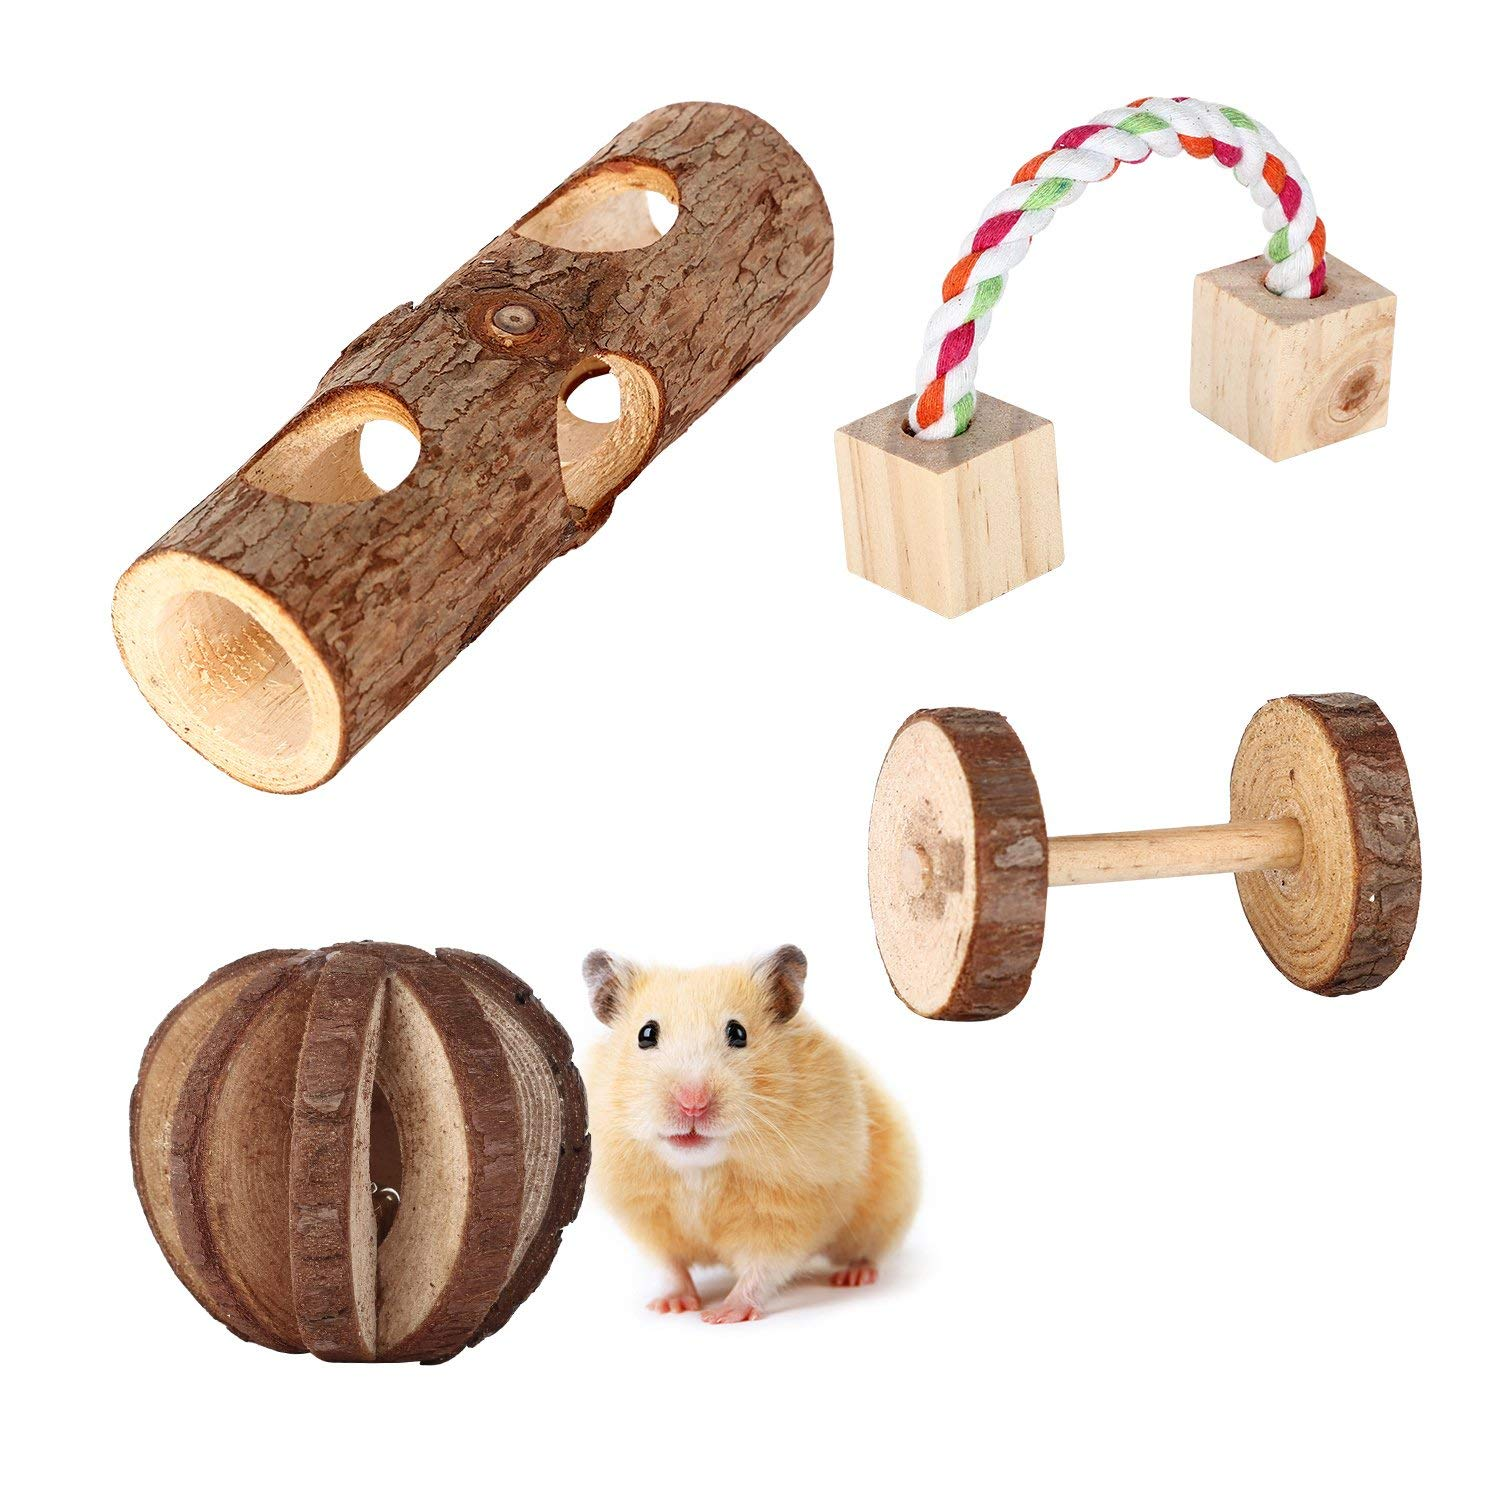 Bvanki 4 Pcs Little Pets Toys, Natural Wooden Hamster Chew Toys Tunnel, Forest Hollow Tree Trunk, Wooden Chew Pine Dumbbells, Unicycle Bell Roller Toy, Mini Rope Toy